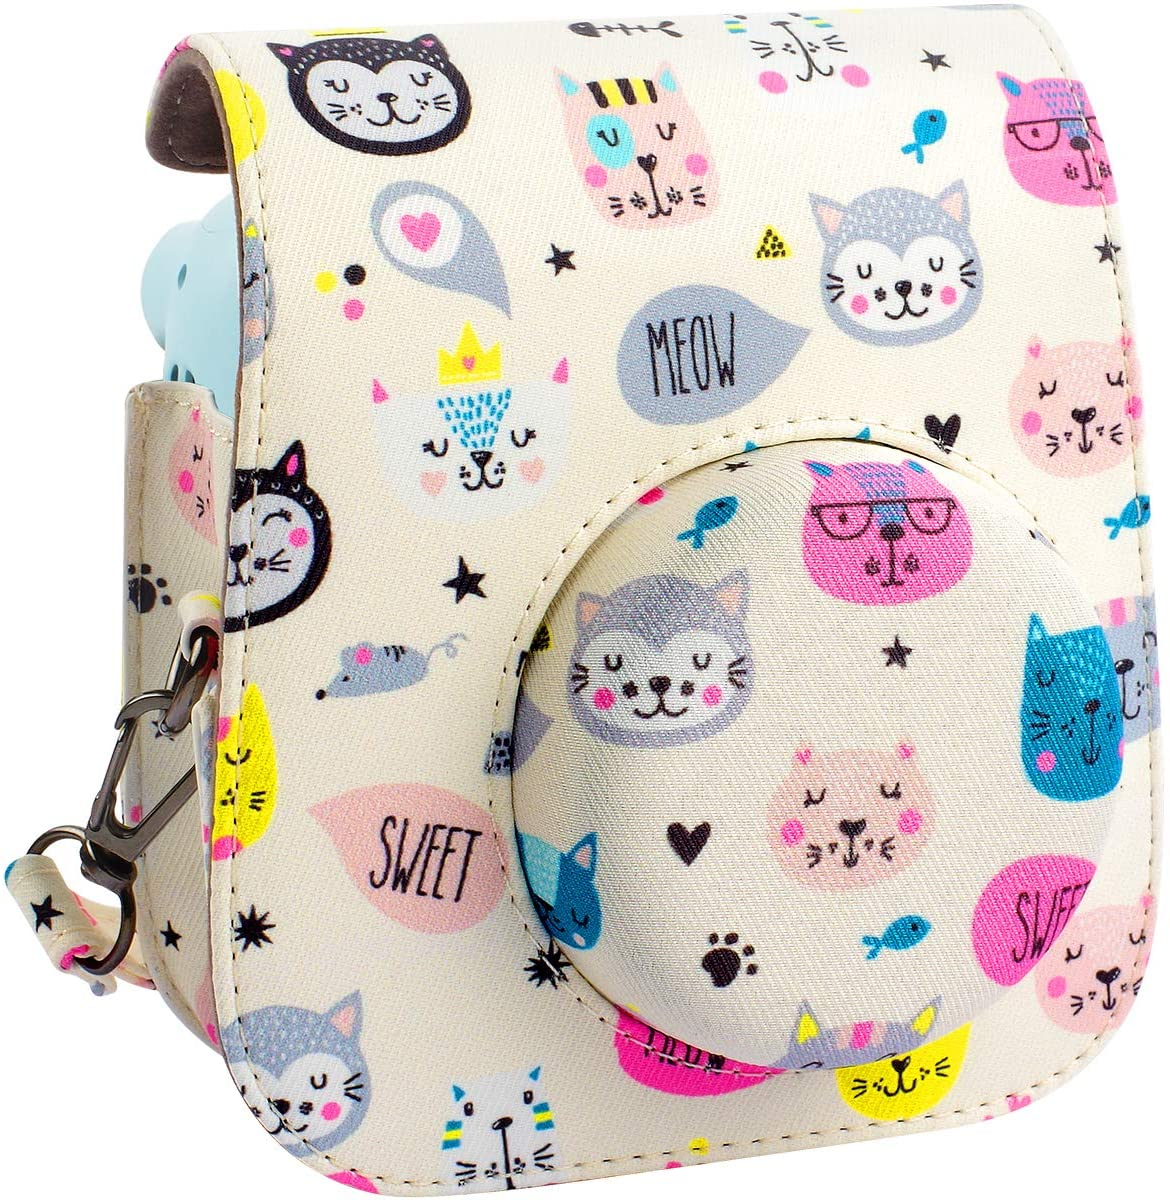 Protective & Portable Case Compatible with Fujifilm Instax Mini 11 Instant Camera with Accessories Pocket and Adjustable Strap. (Kitty)